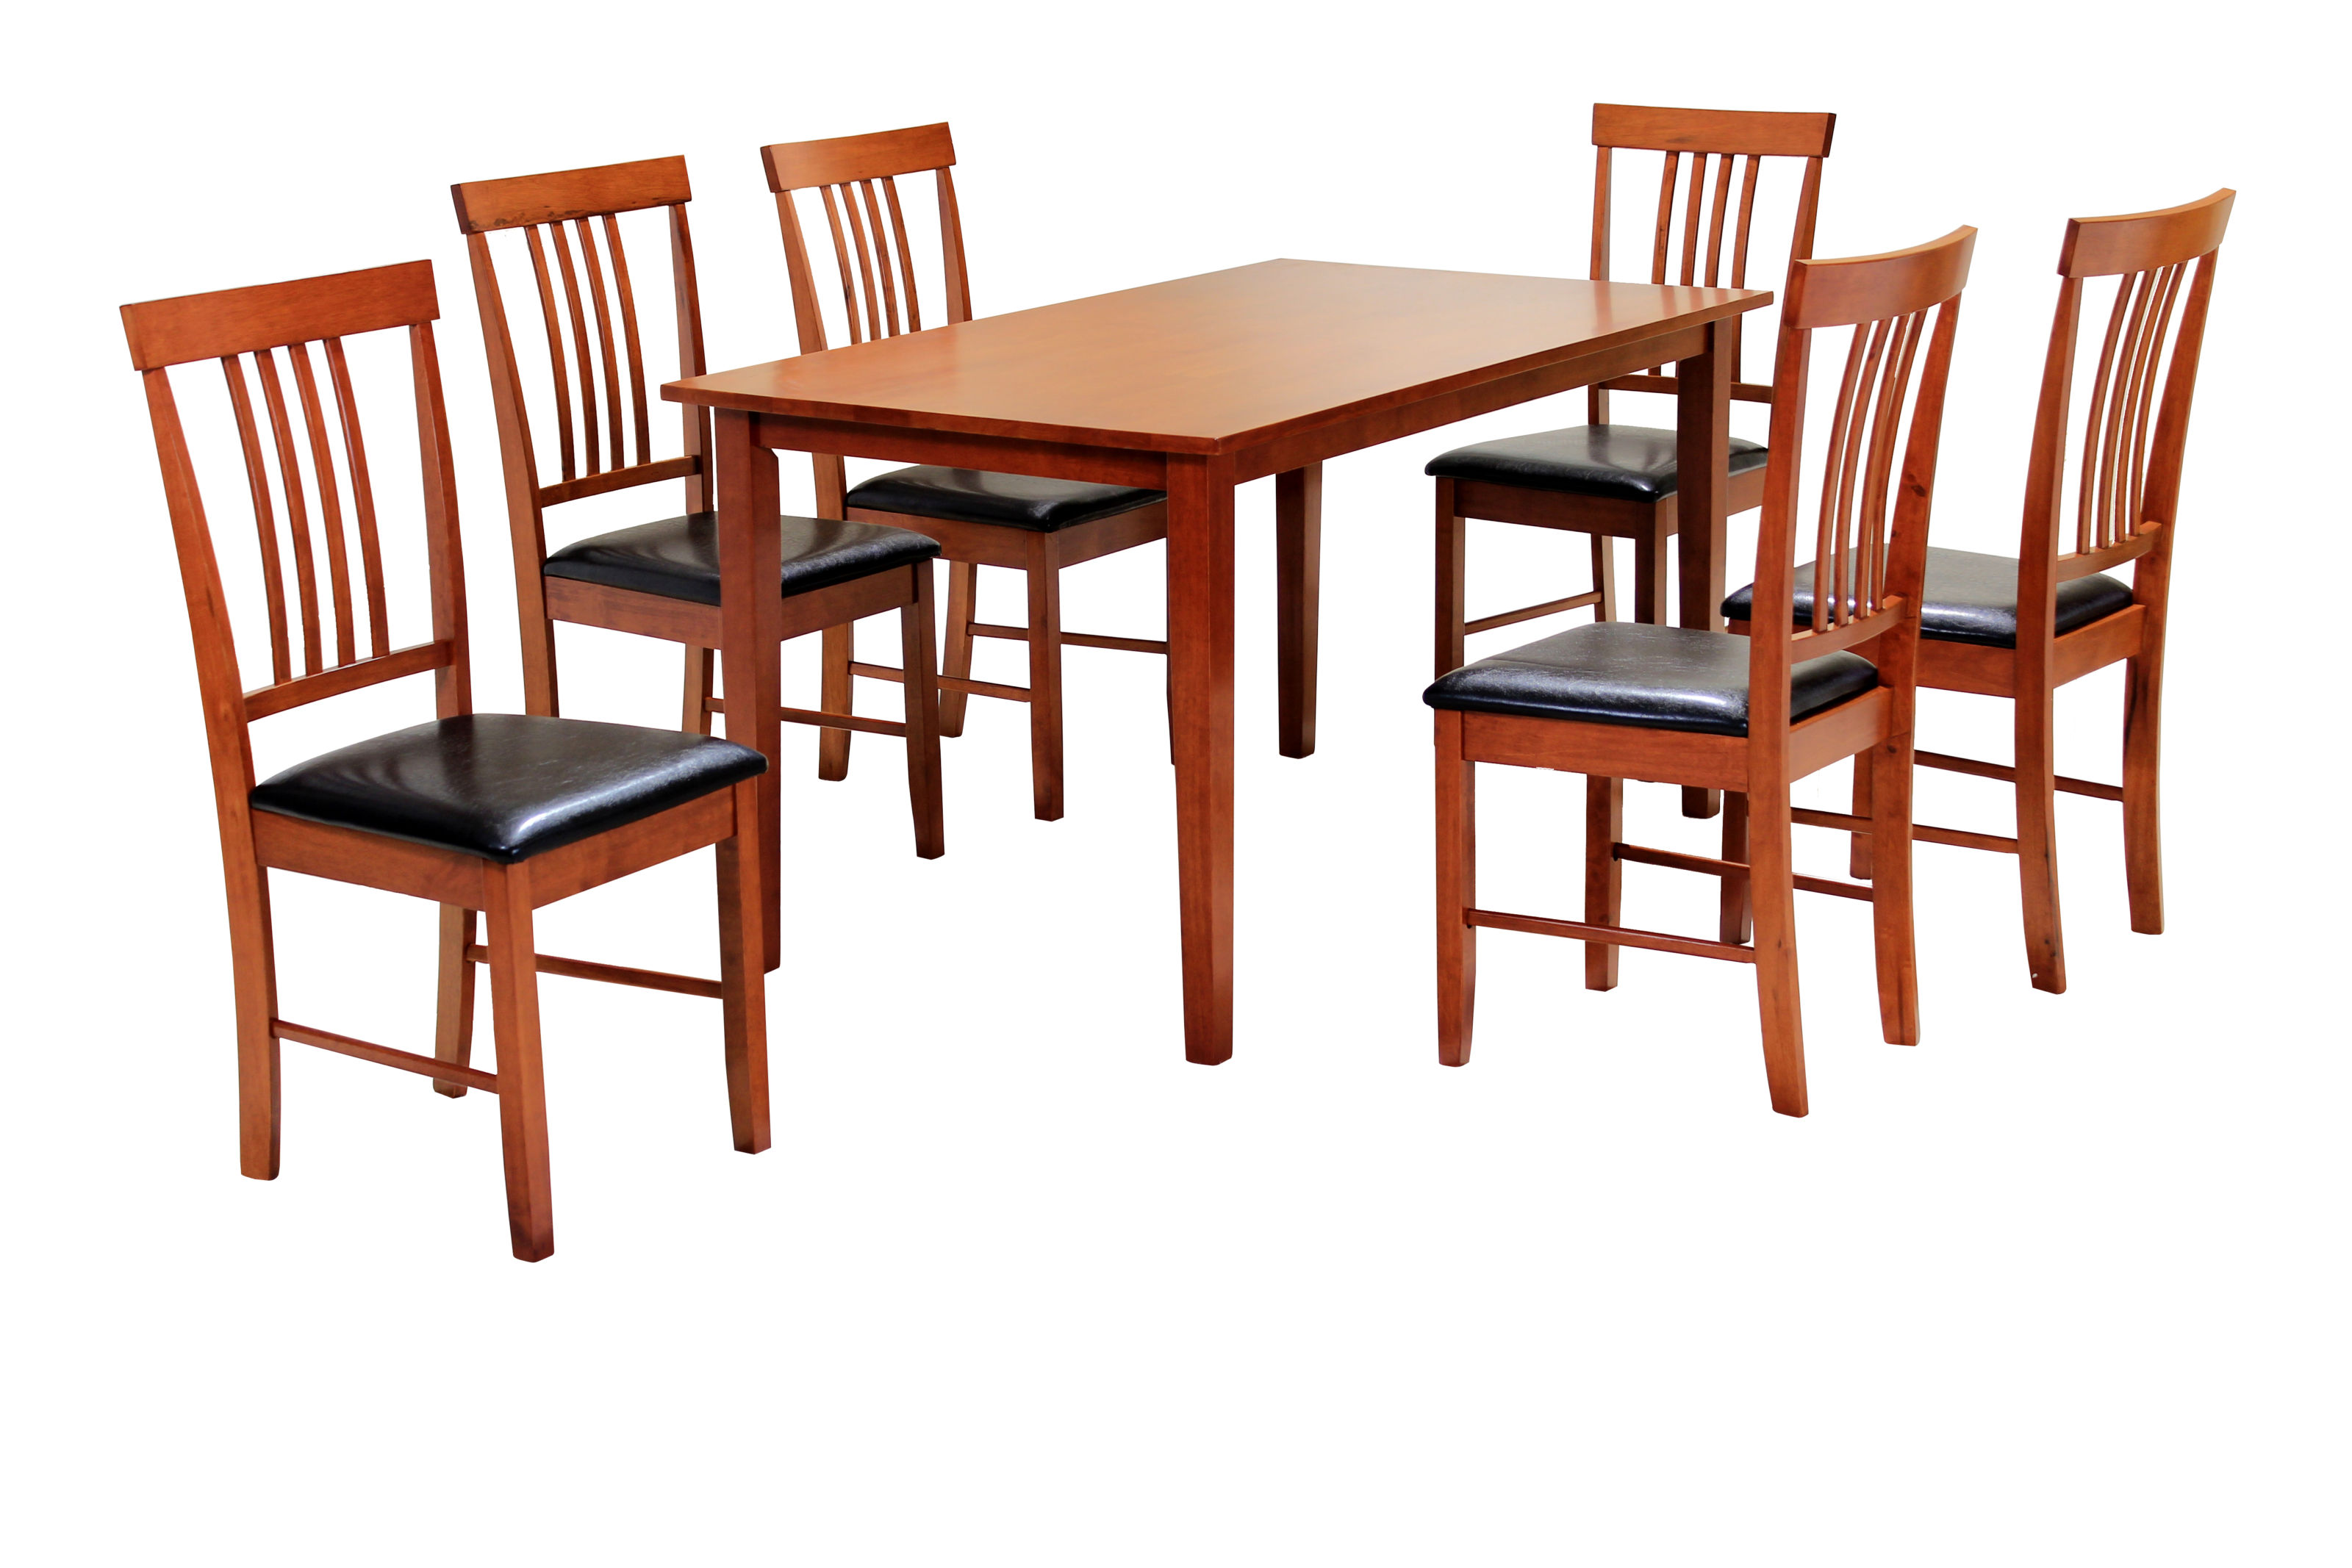 Massa Mahogany Large Dining Table With 6 Chairs